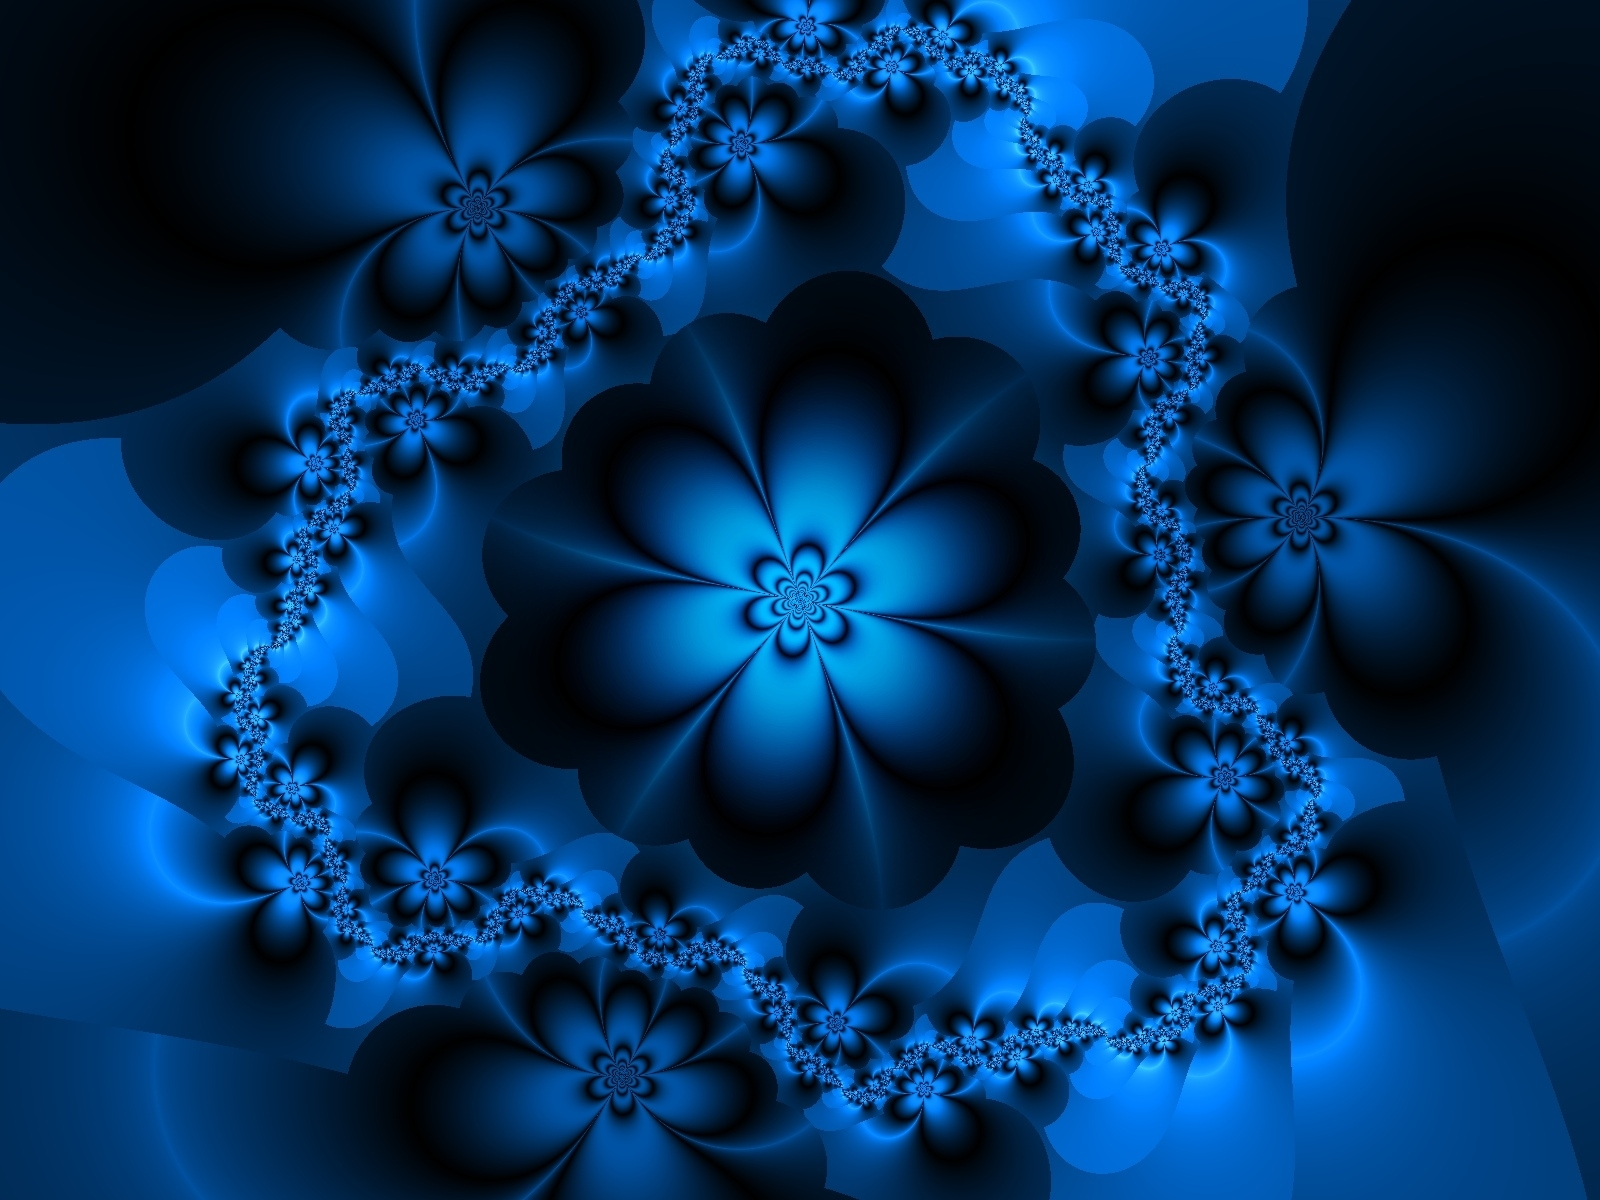 5264 Wallpapers and Background images on your desktop. Download Background, Abstract pictures on PC for free